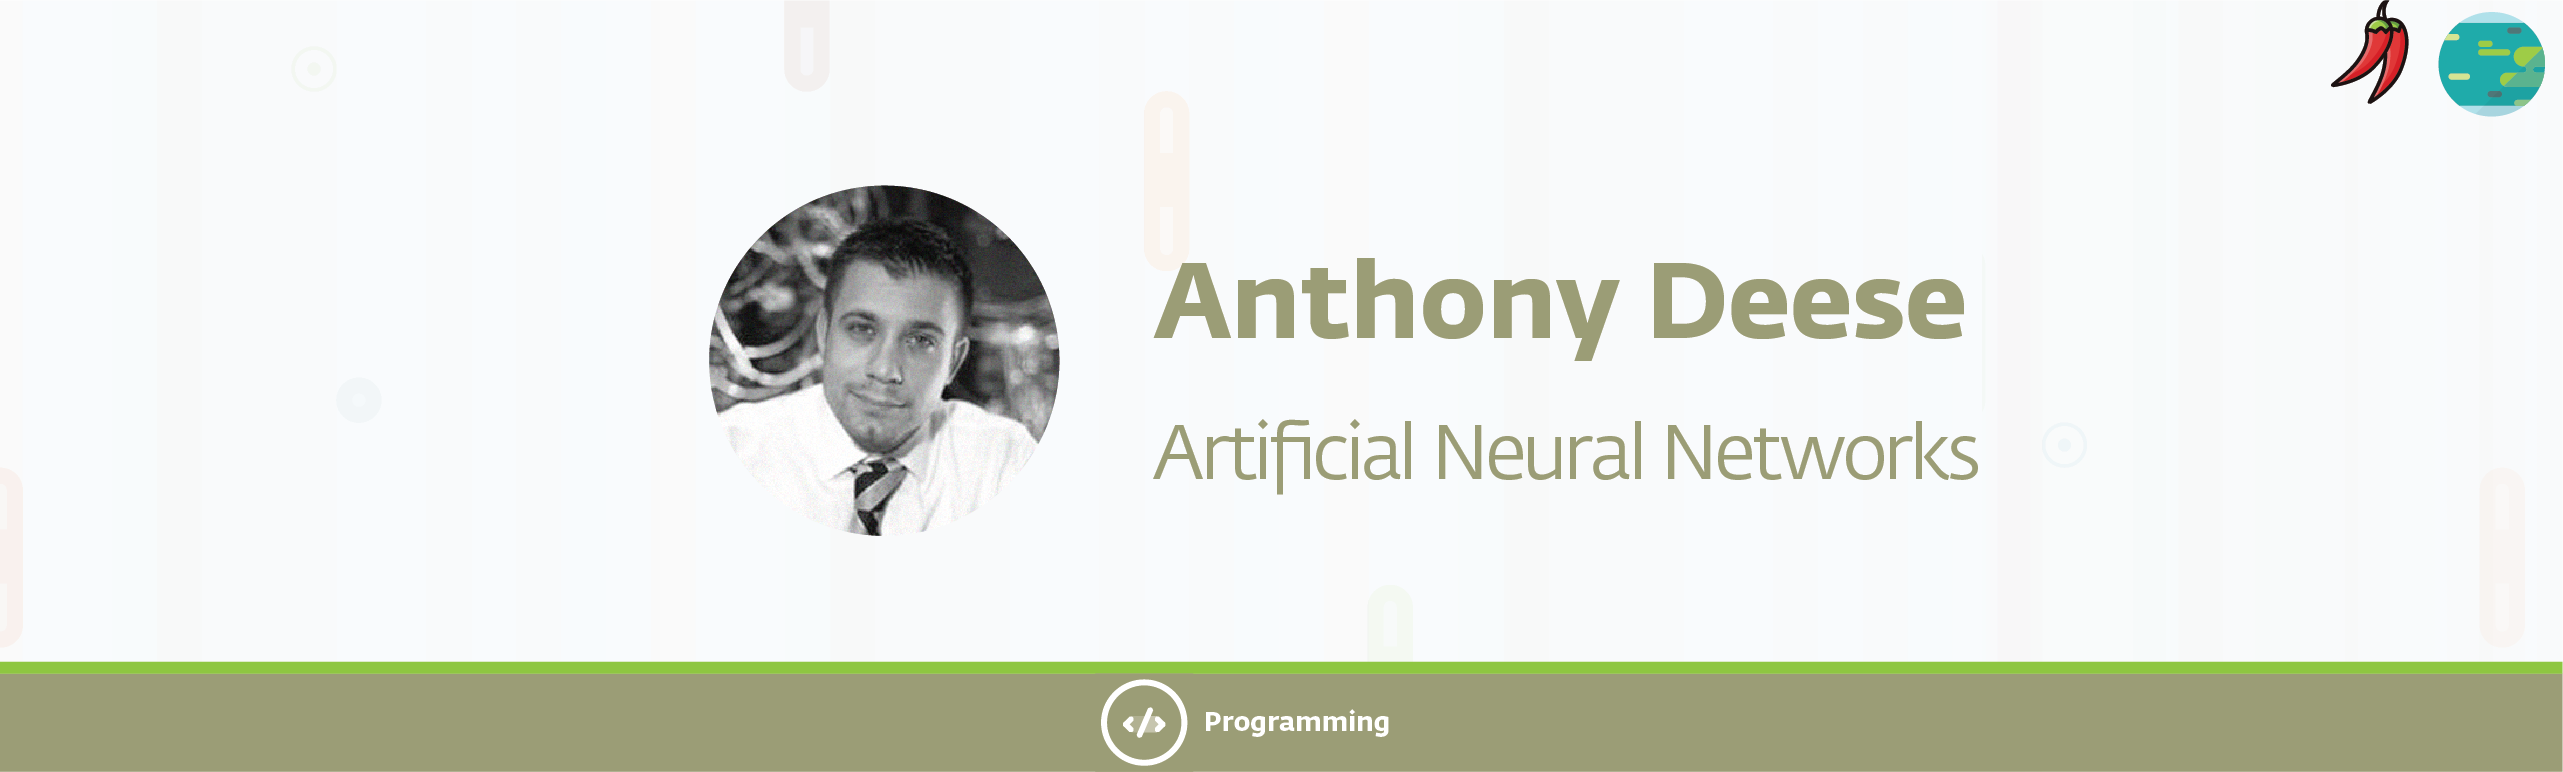 labs jul 17 - Artificial Neural Networks